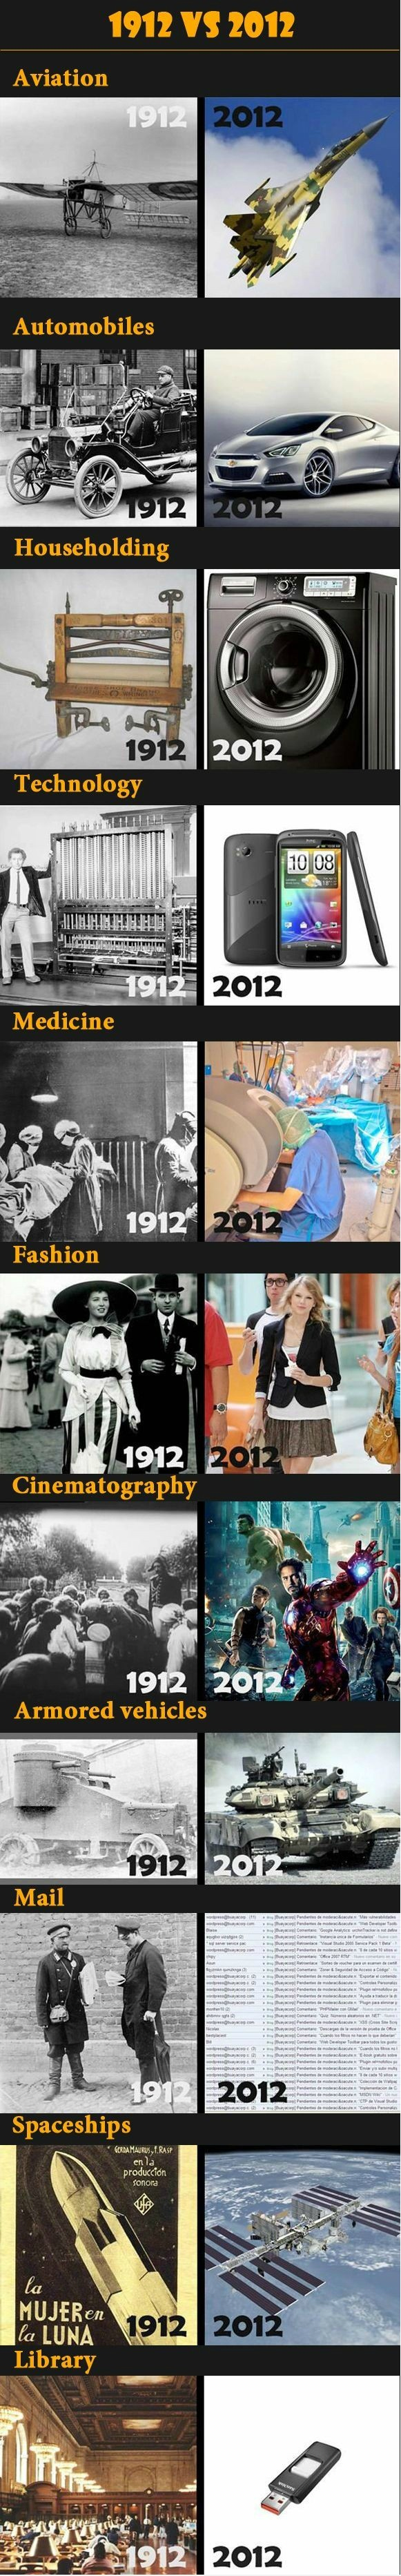 There Is A Great Difference From 1912 To Now! - Posted in Funny, Troll comics and LOL Images - LOL Heaven